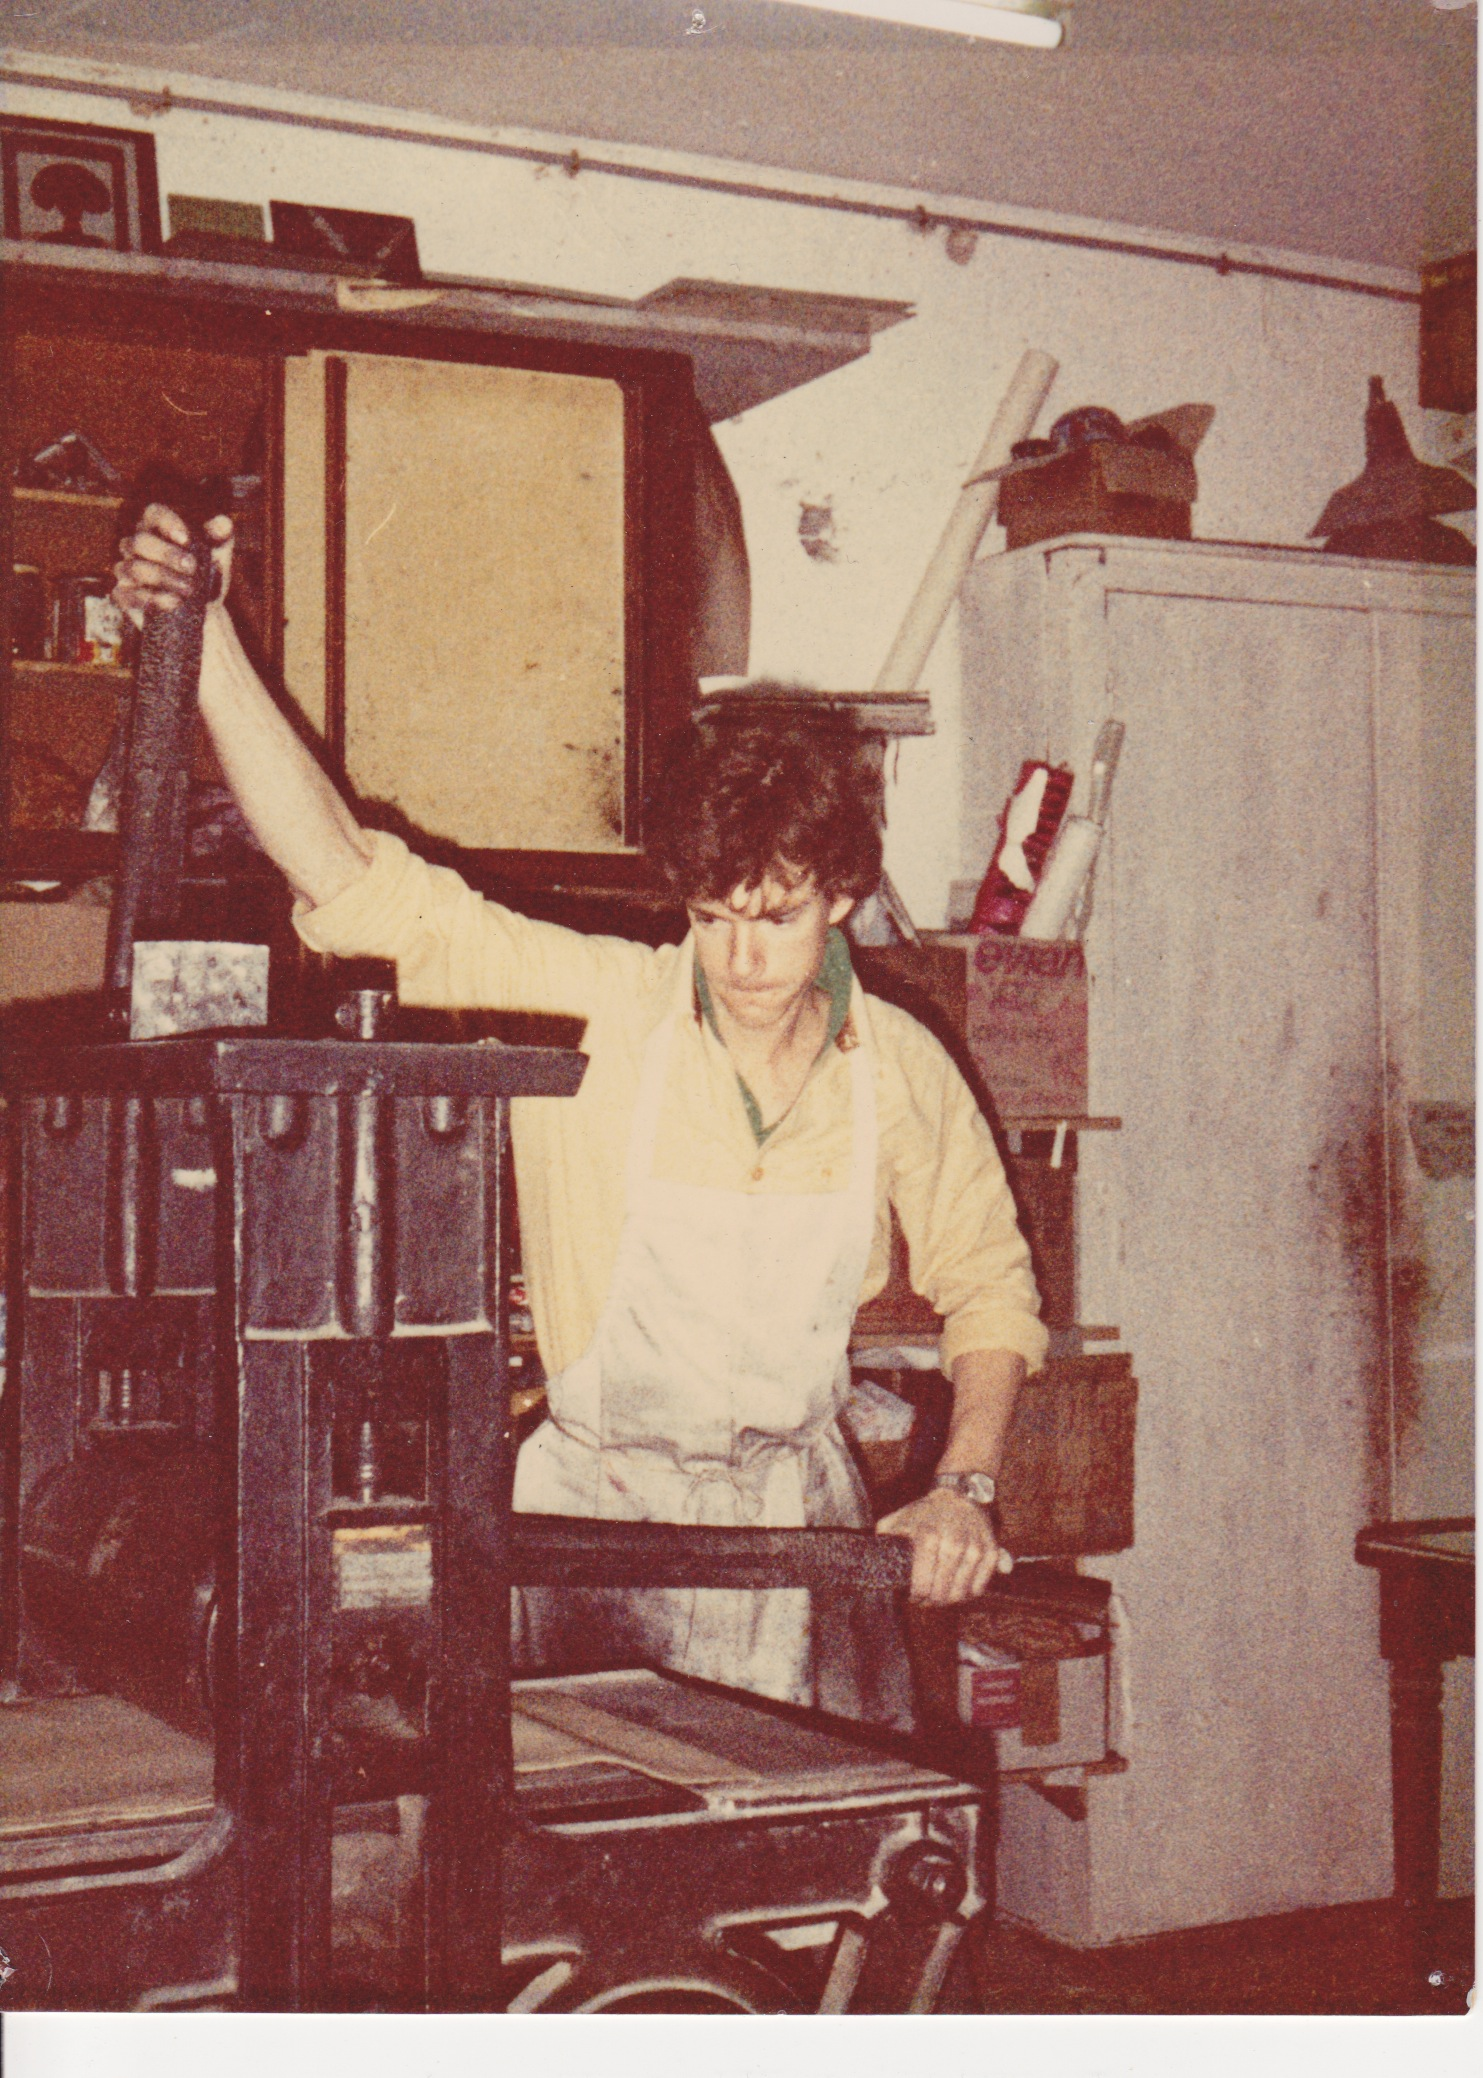 James Stroud printing at Atelier 17, Paris 1980.